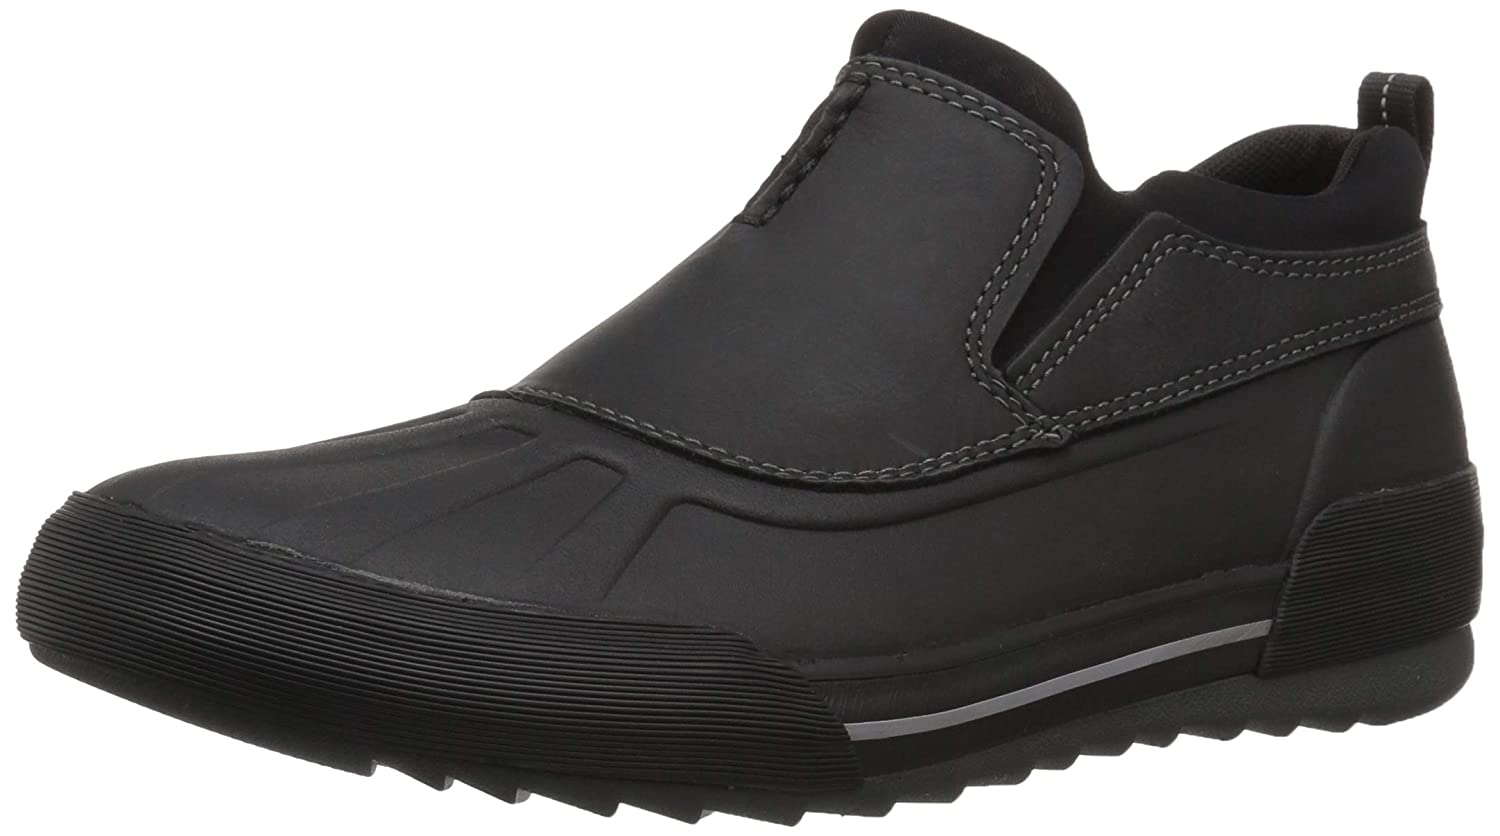 CLARKS Men's Bowman Free Rain Shoe,